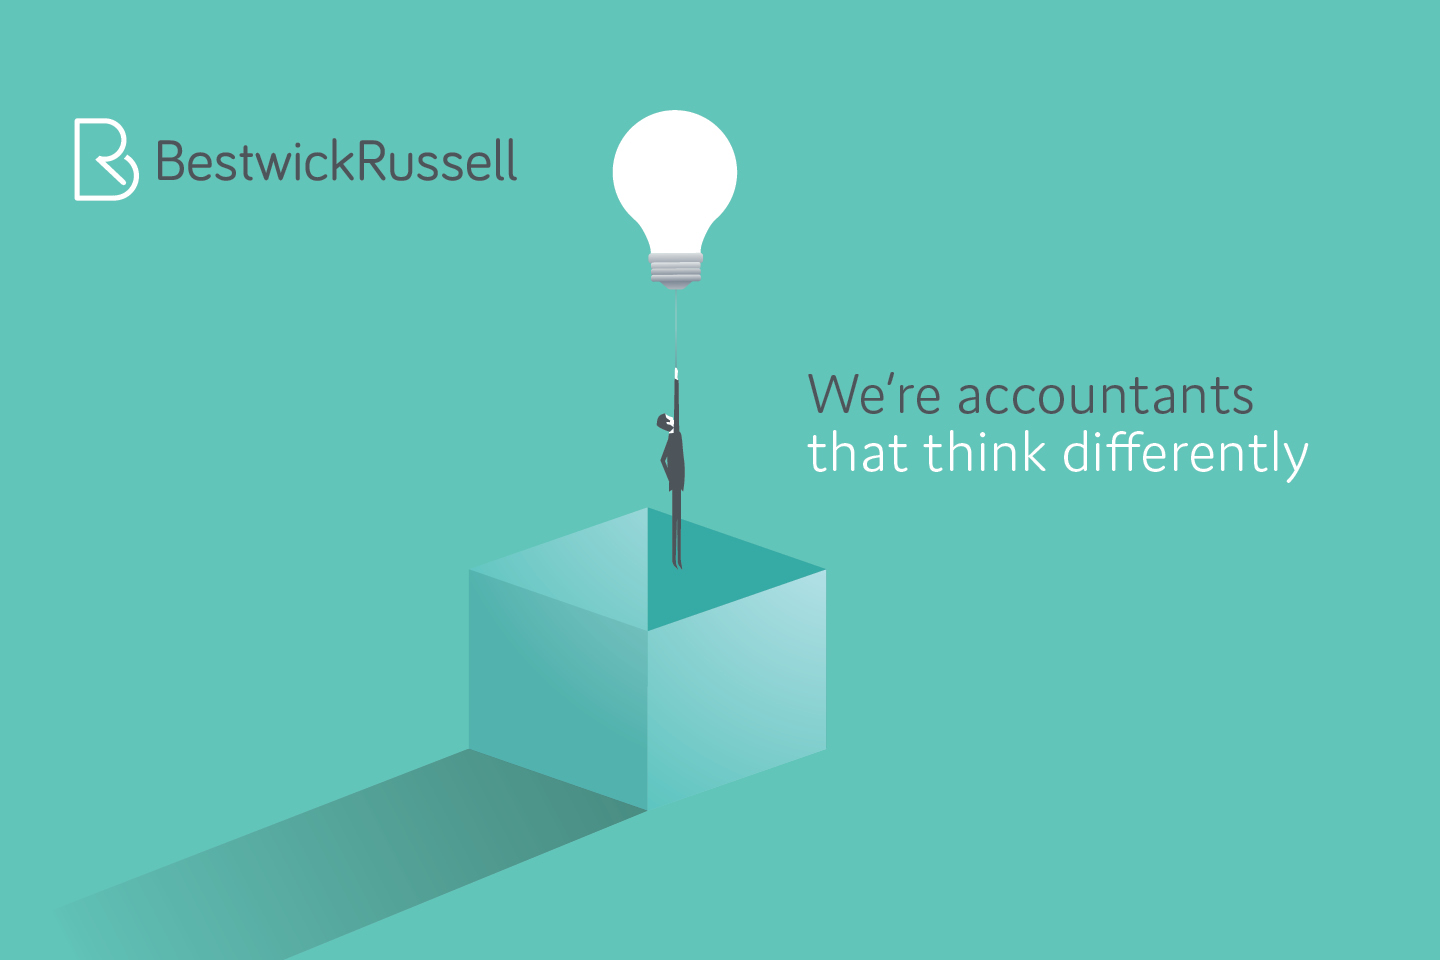 Bestwick Russell branding with lightbulb